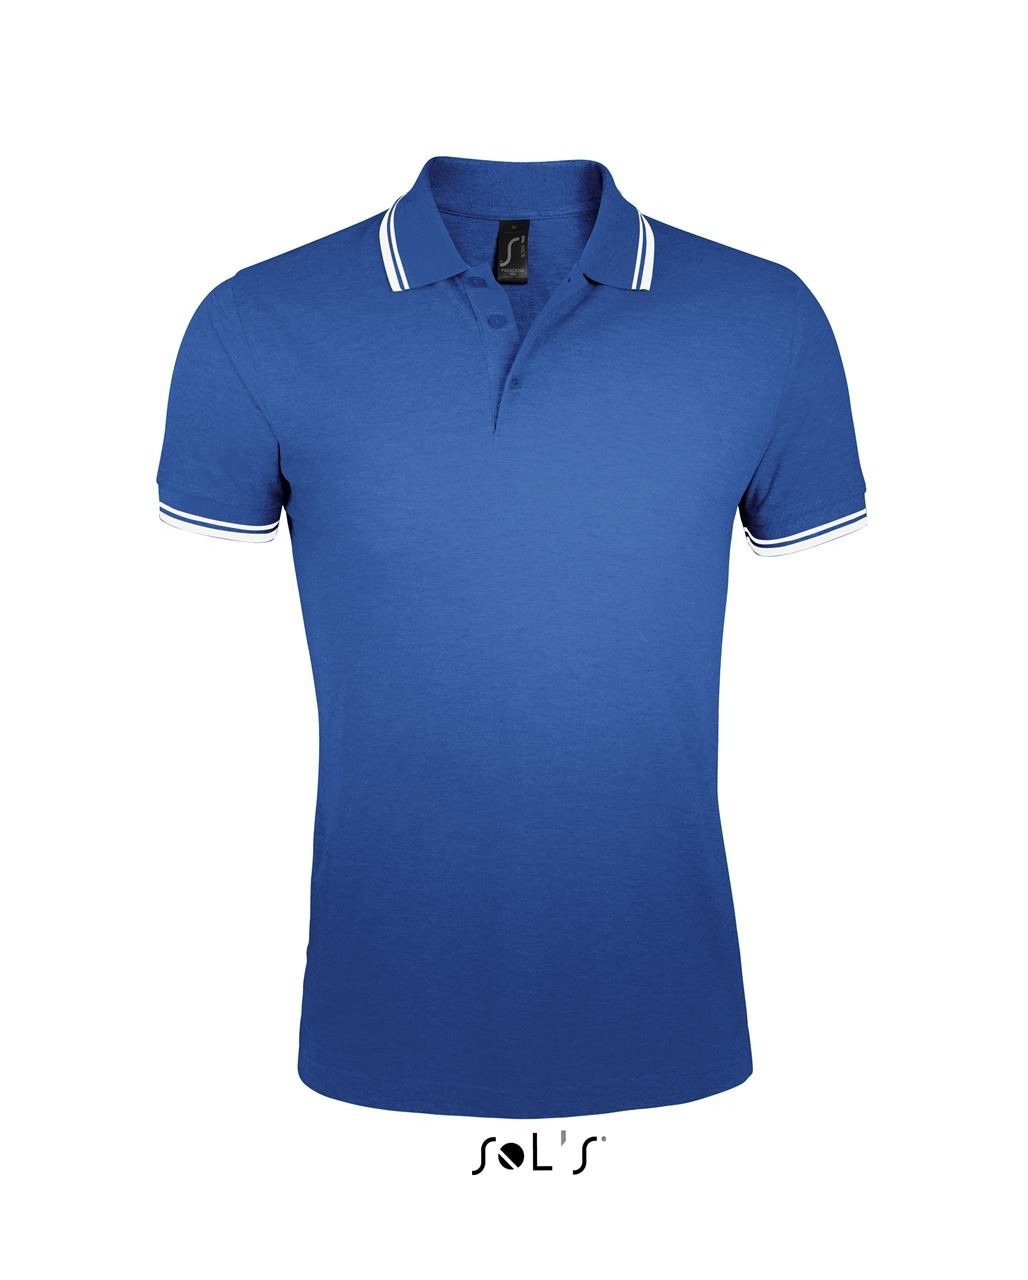 royal blue polo shirt mens